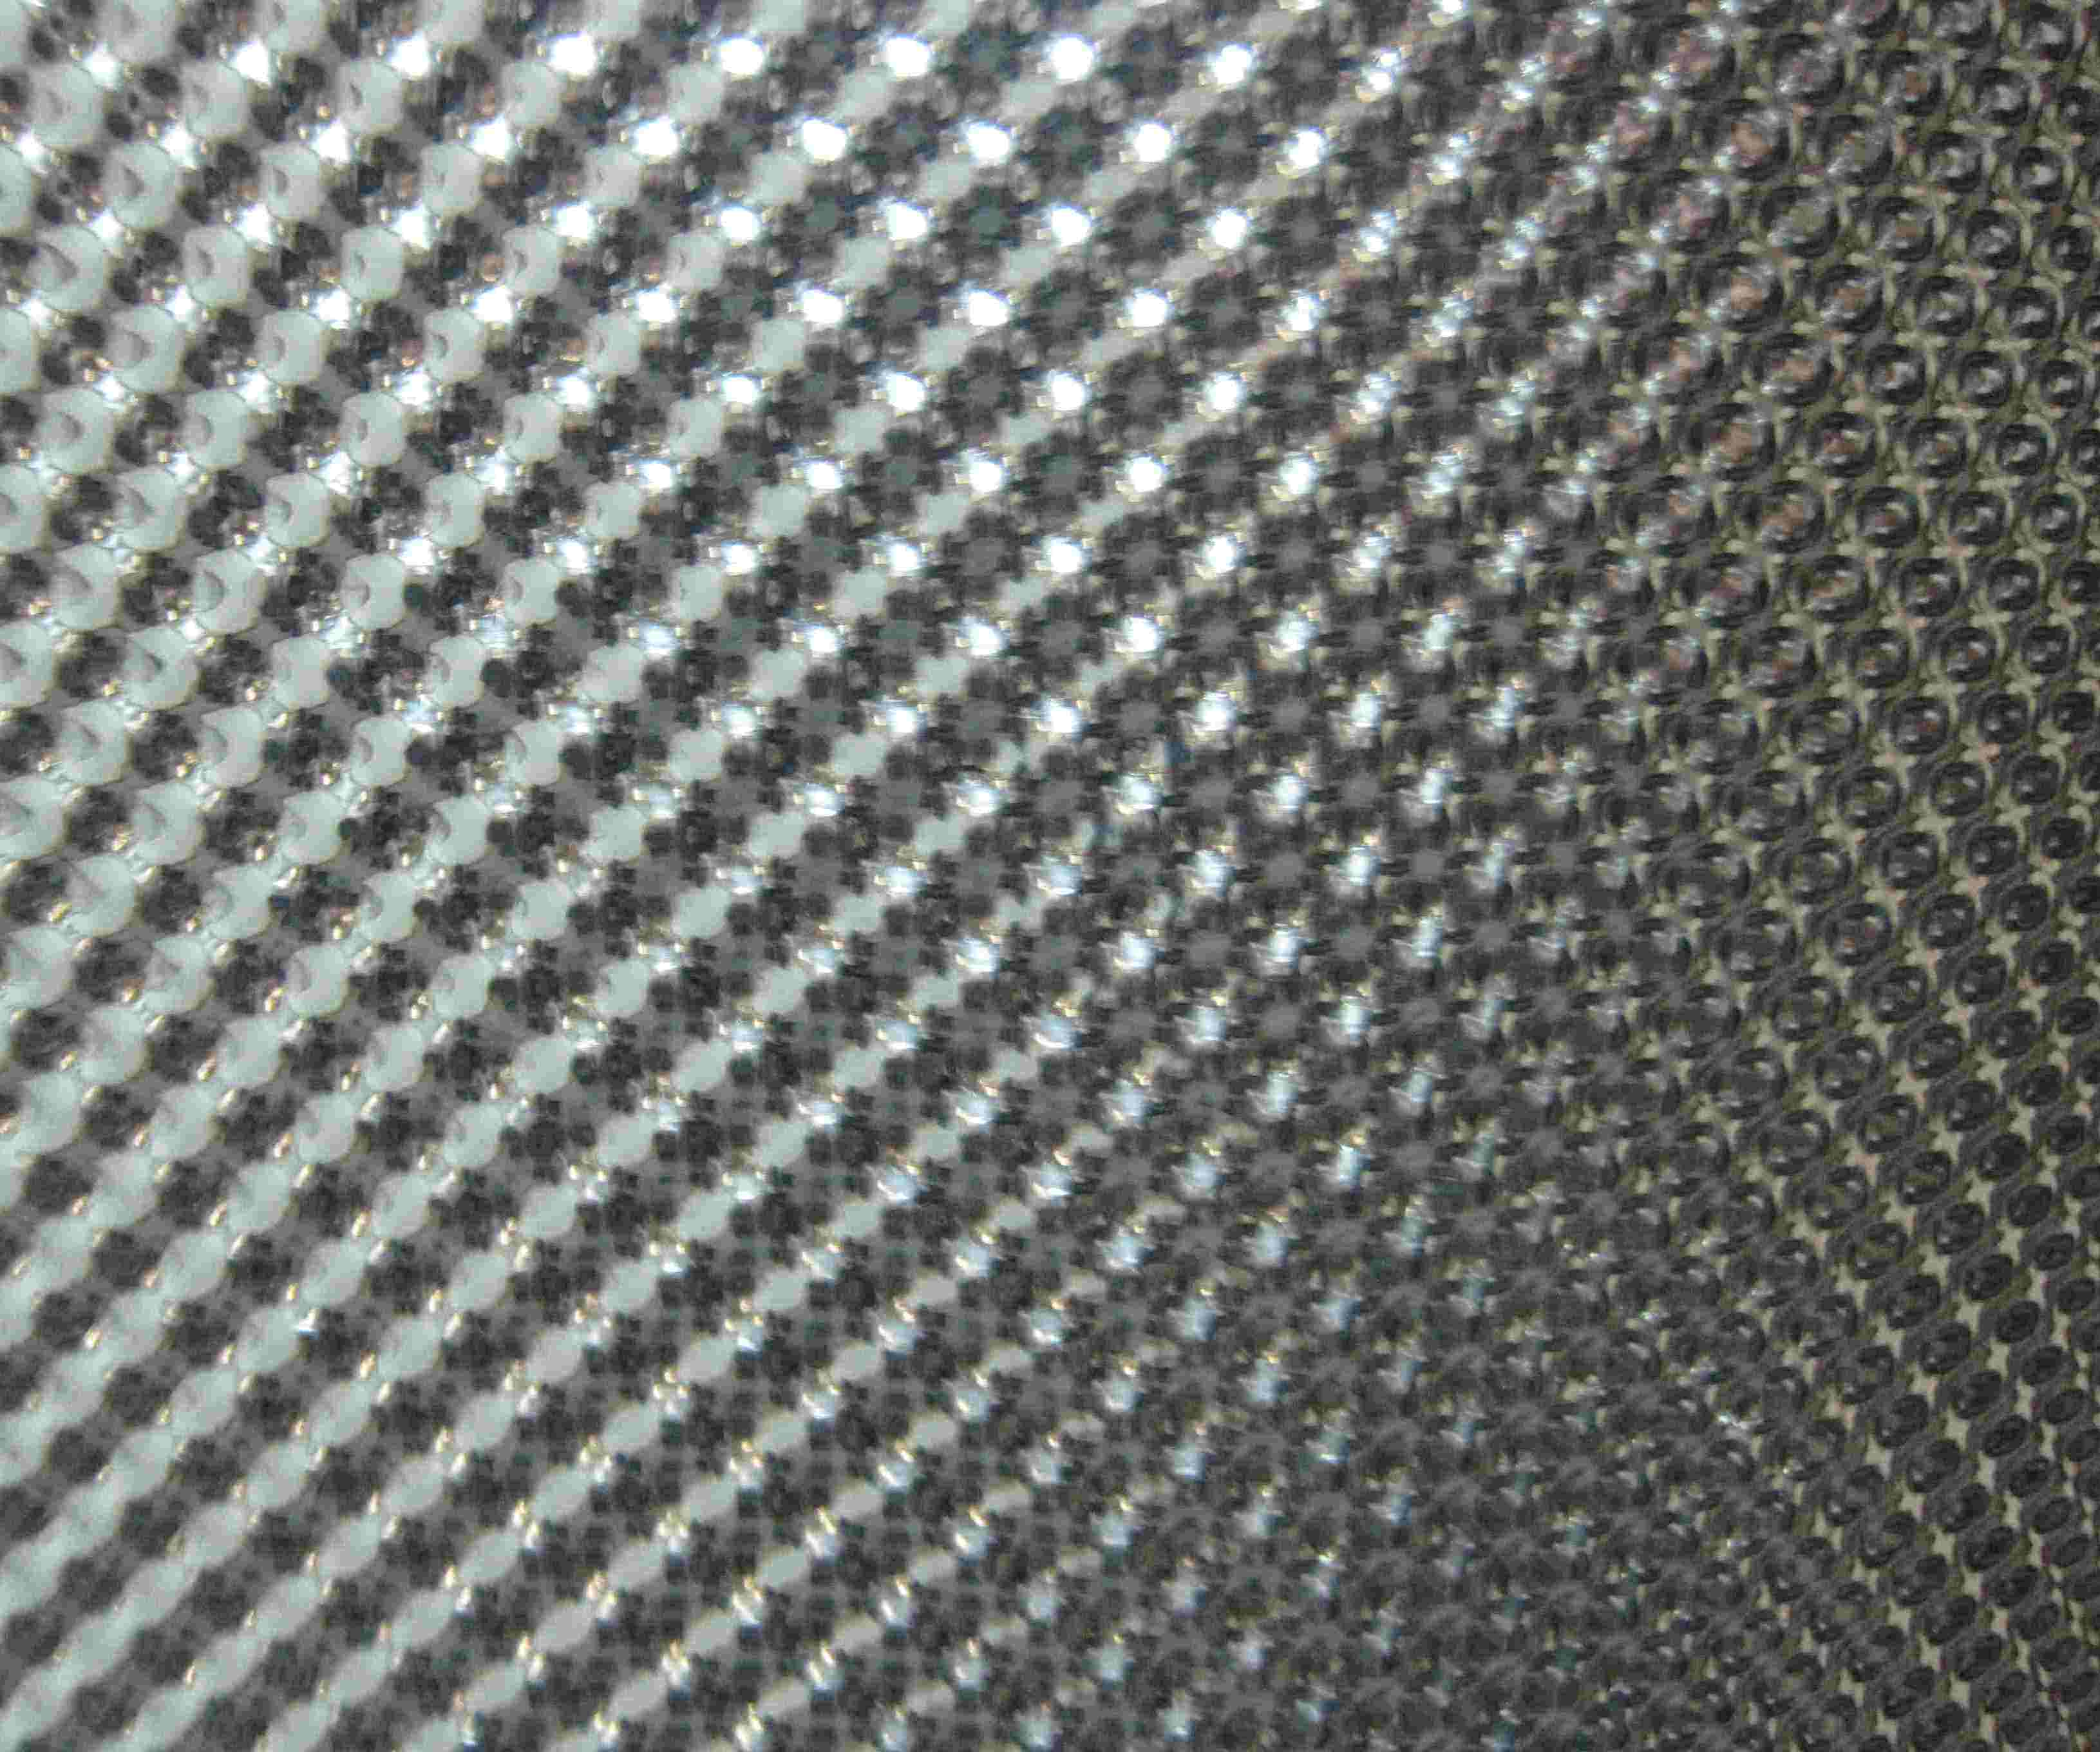 hole perforated decor for p round aluminum decorative mm sheet